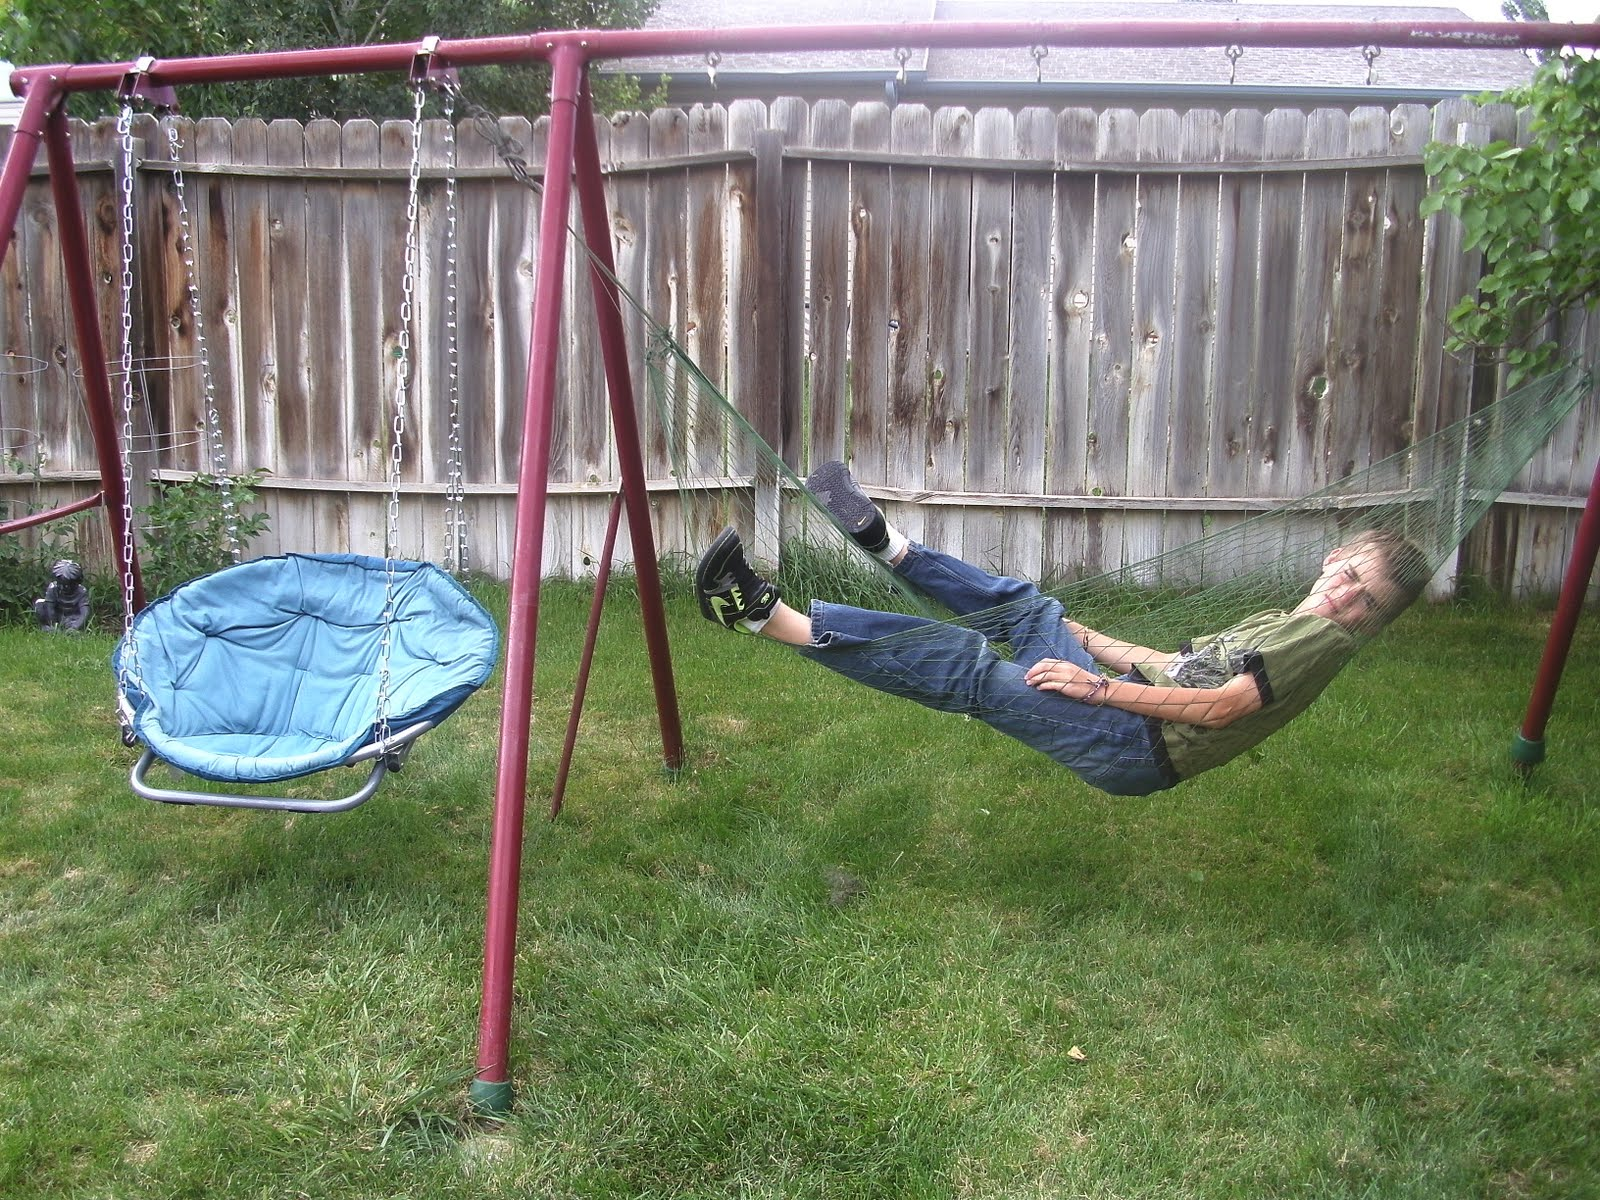 How To Make A Hammock Chair Random Acts Of Momness How To Make A Swing Set Chair And